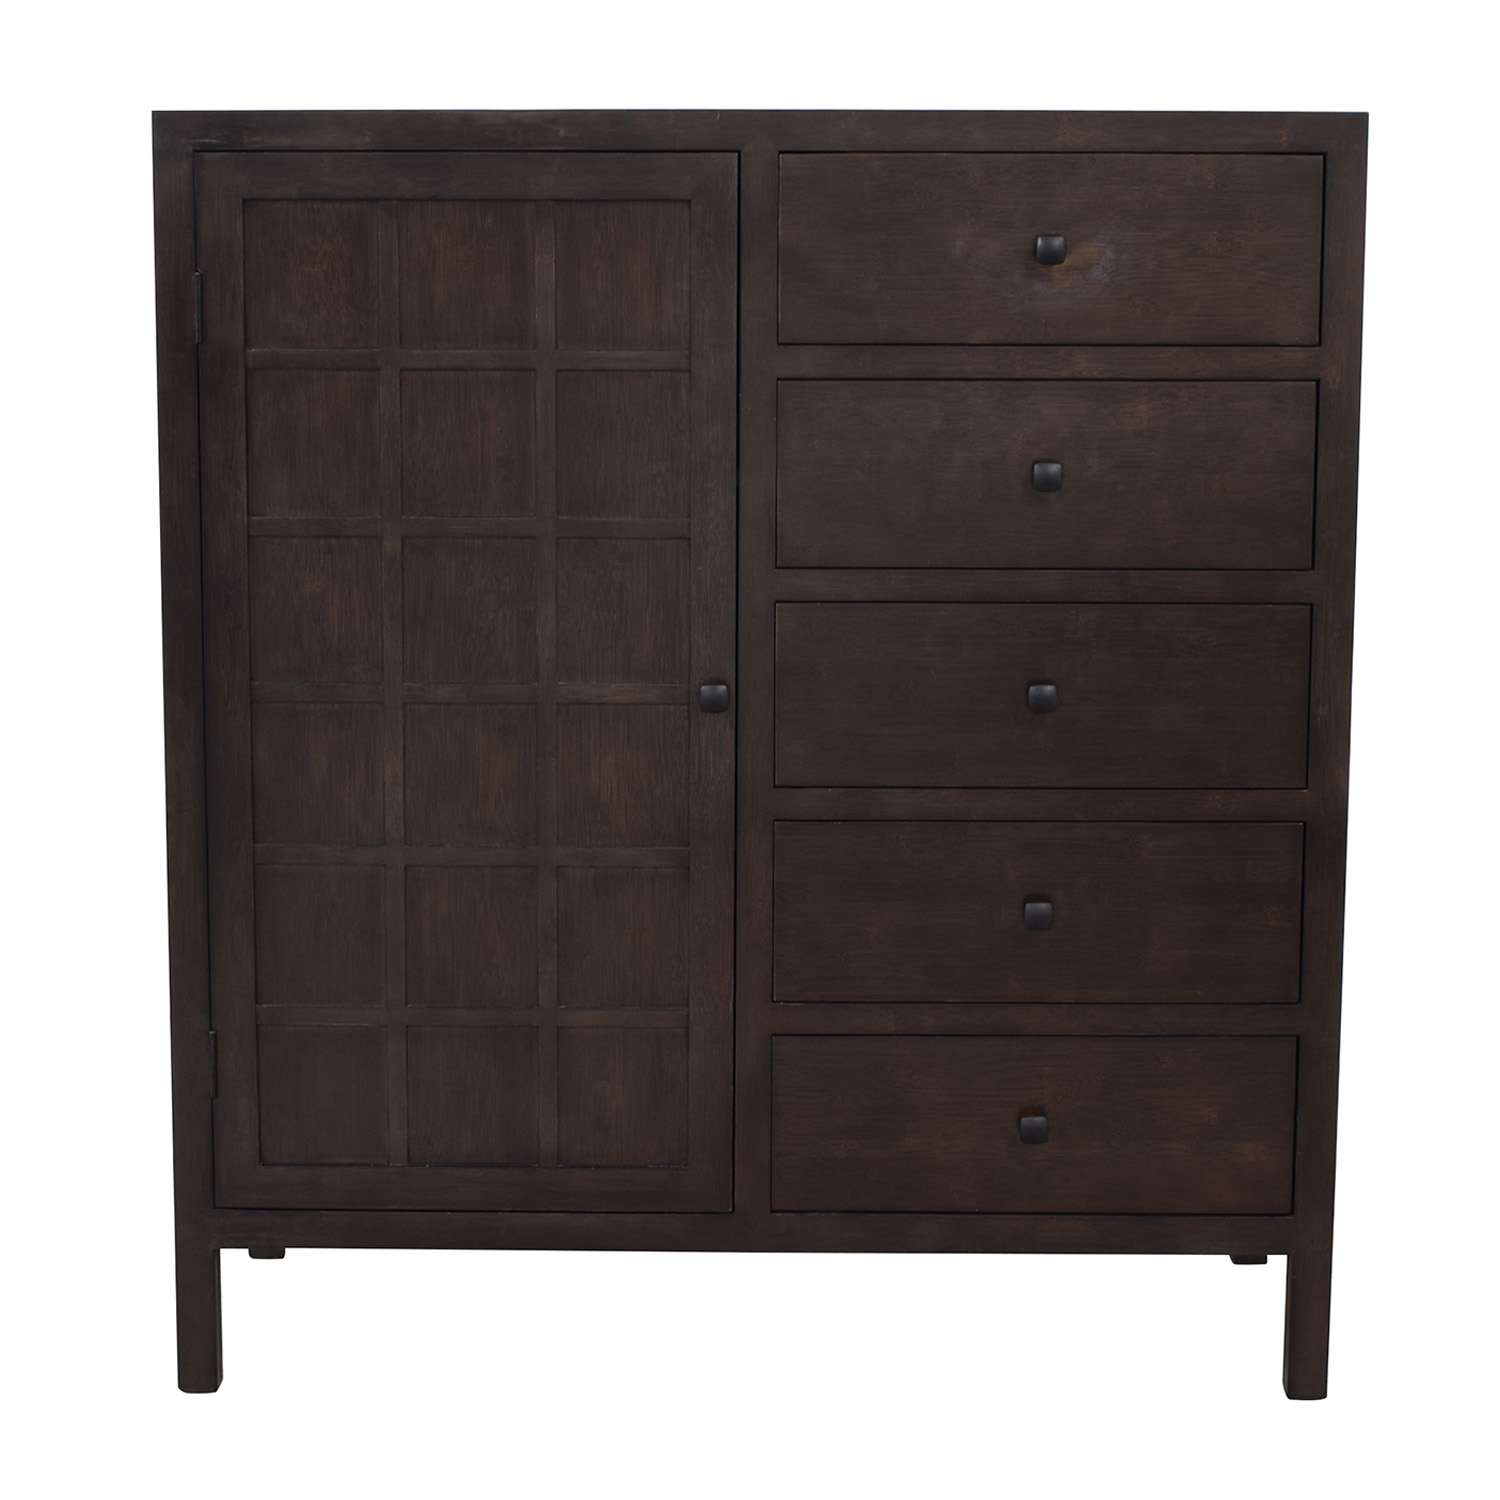 Crate & Barrel Crate & Barrel Maria Yee Five-Drawer Armoire dimensions